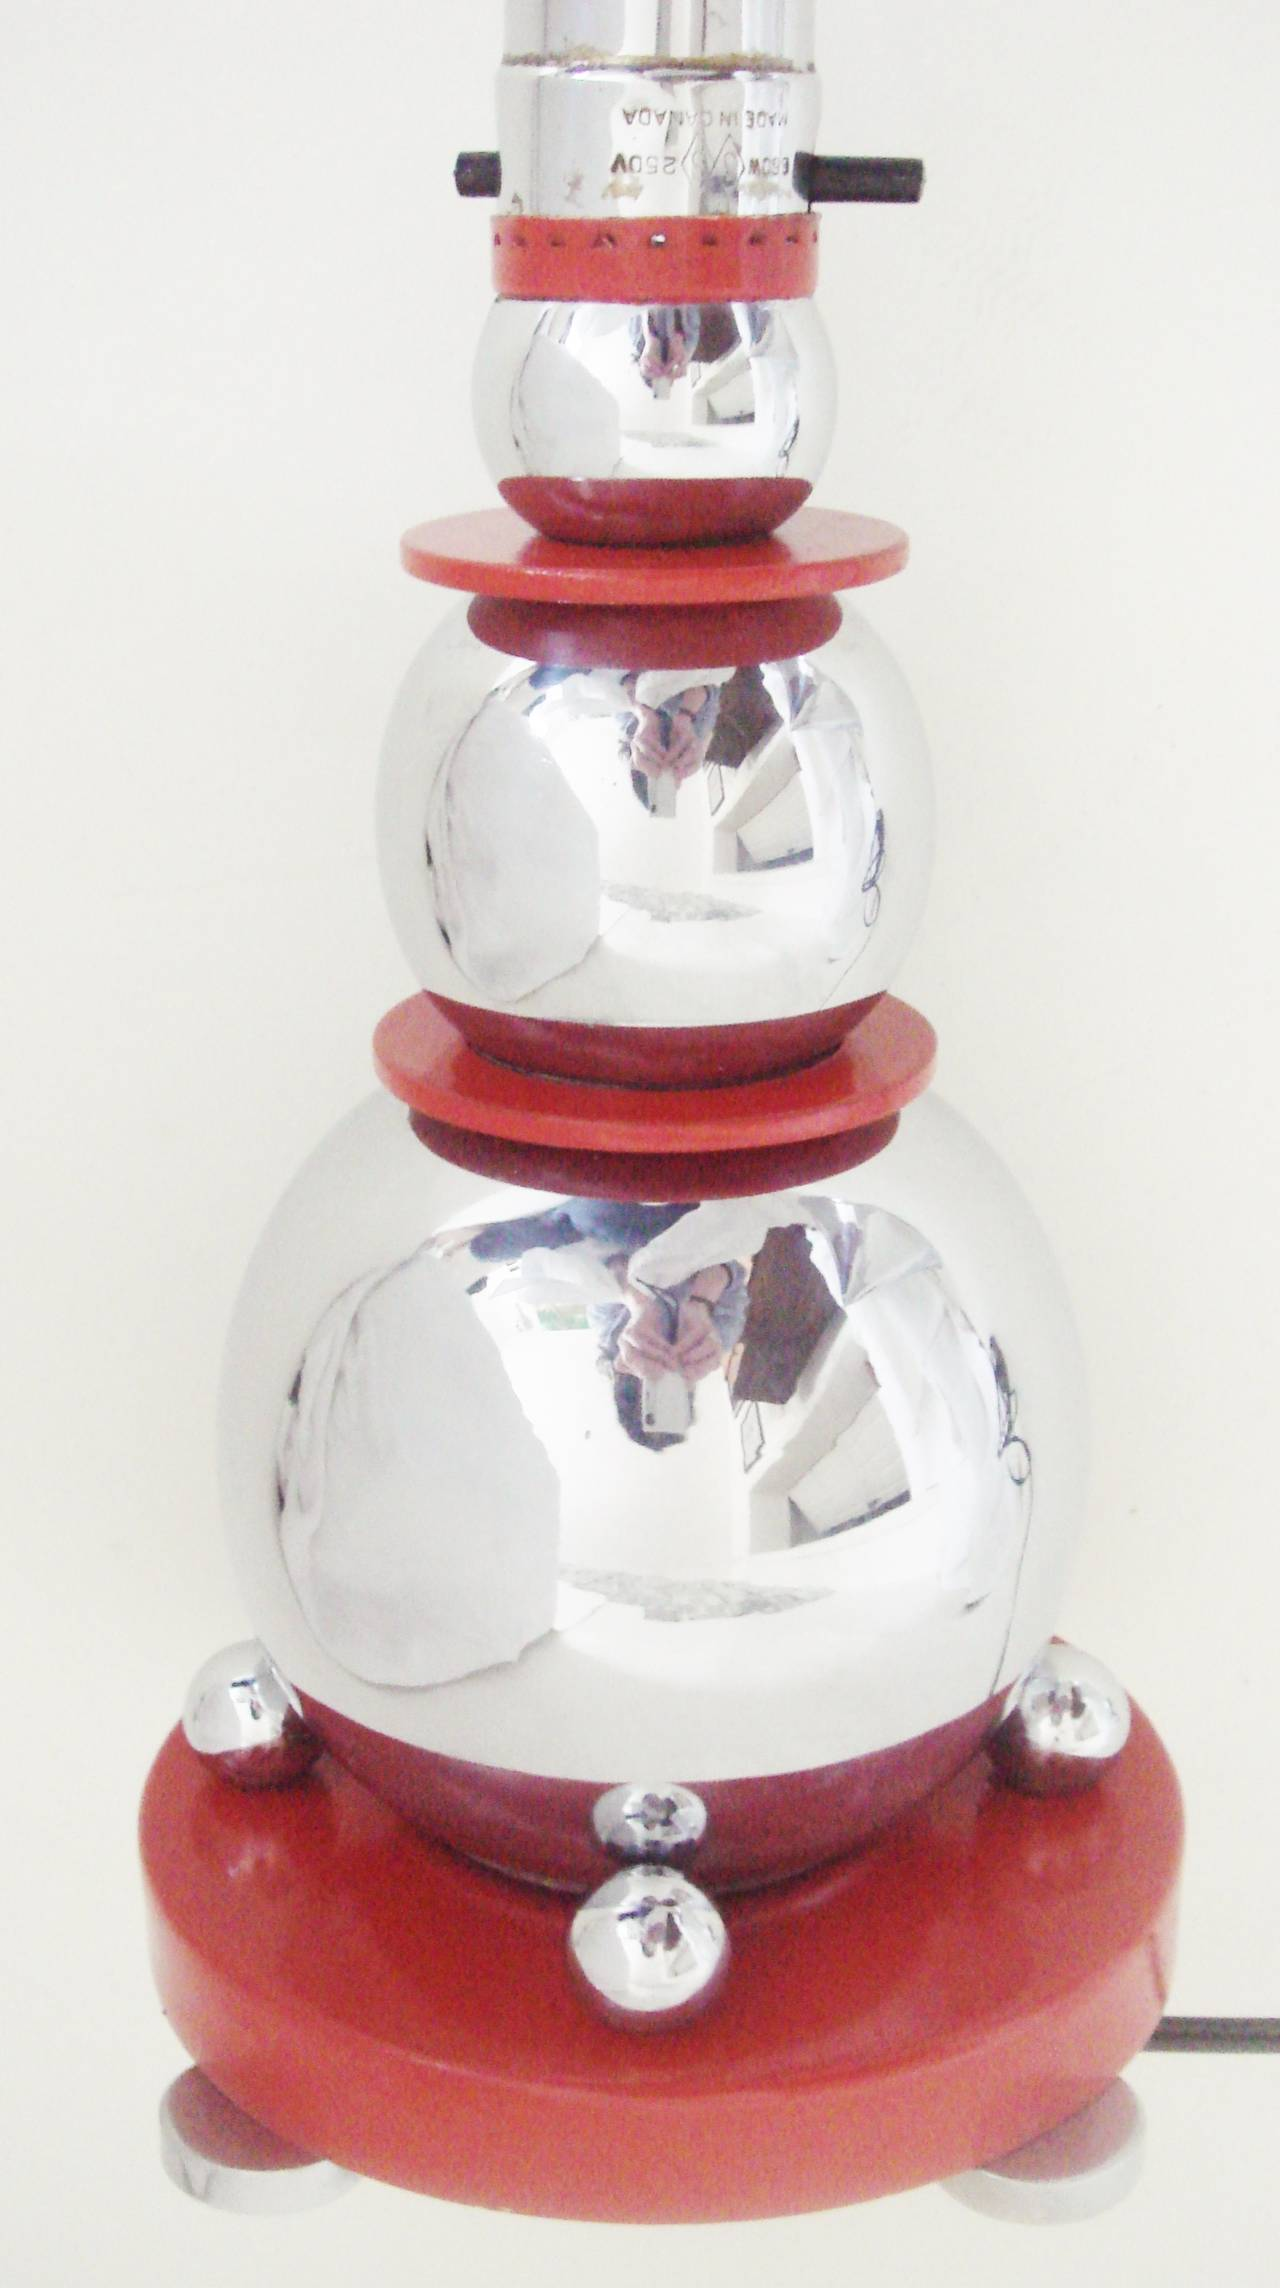 Rare Art Deco Chrome and Red Enamel Cone and Sphere Table Lamp by Electrolier 7